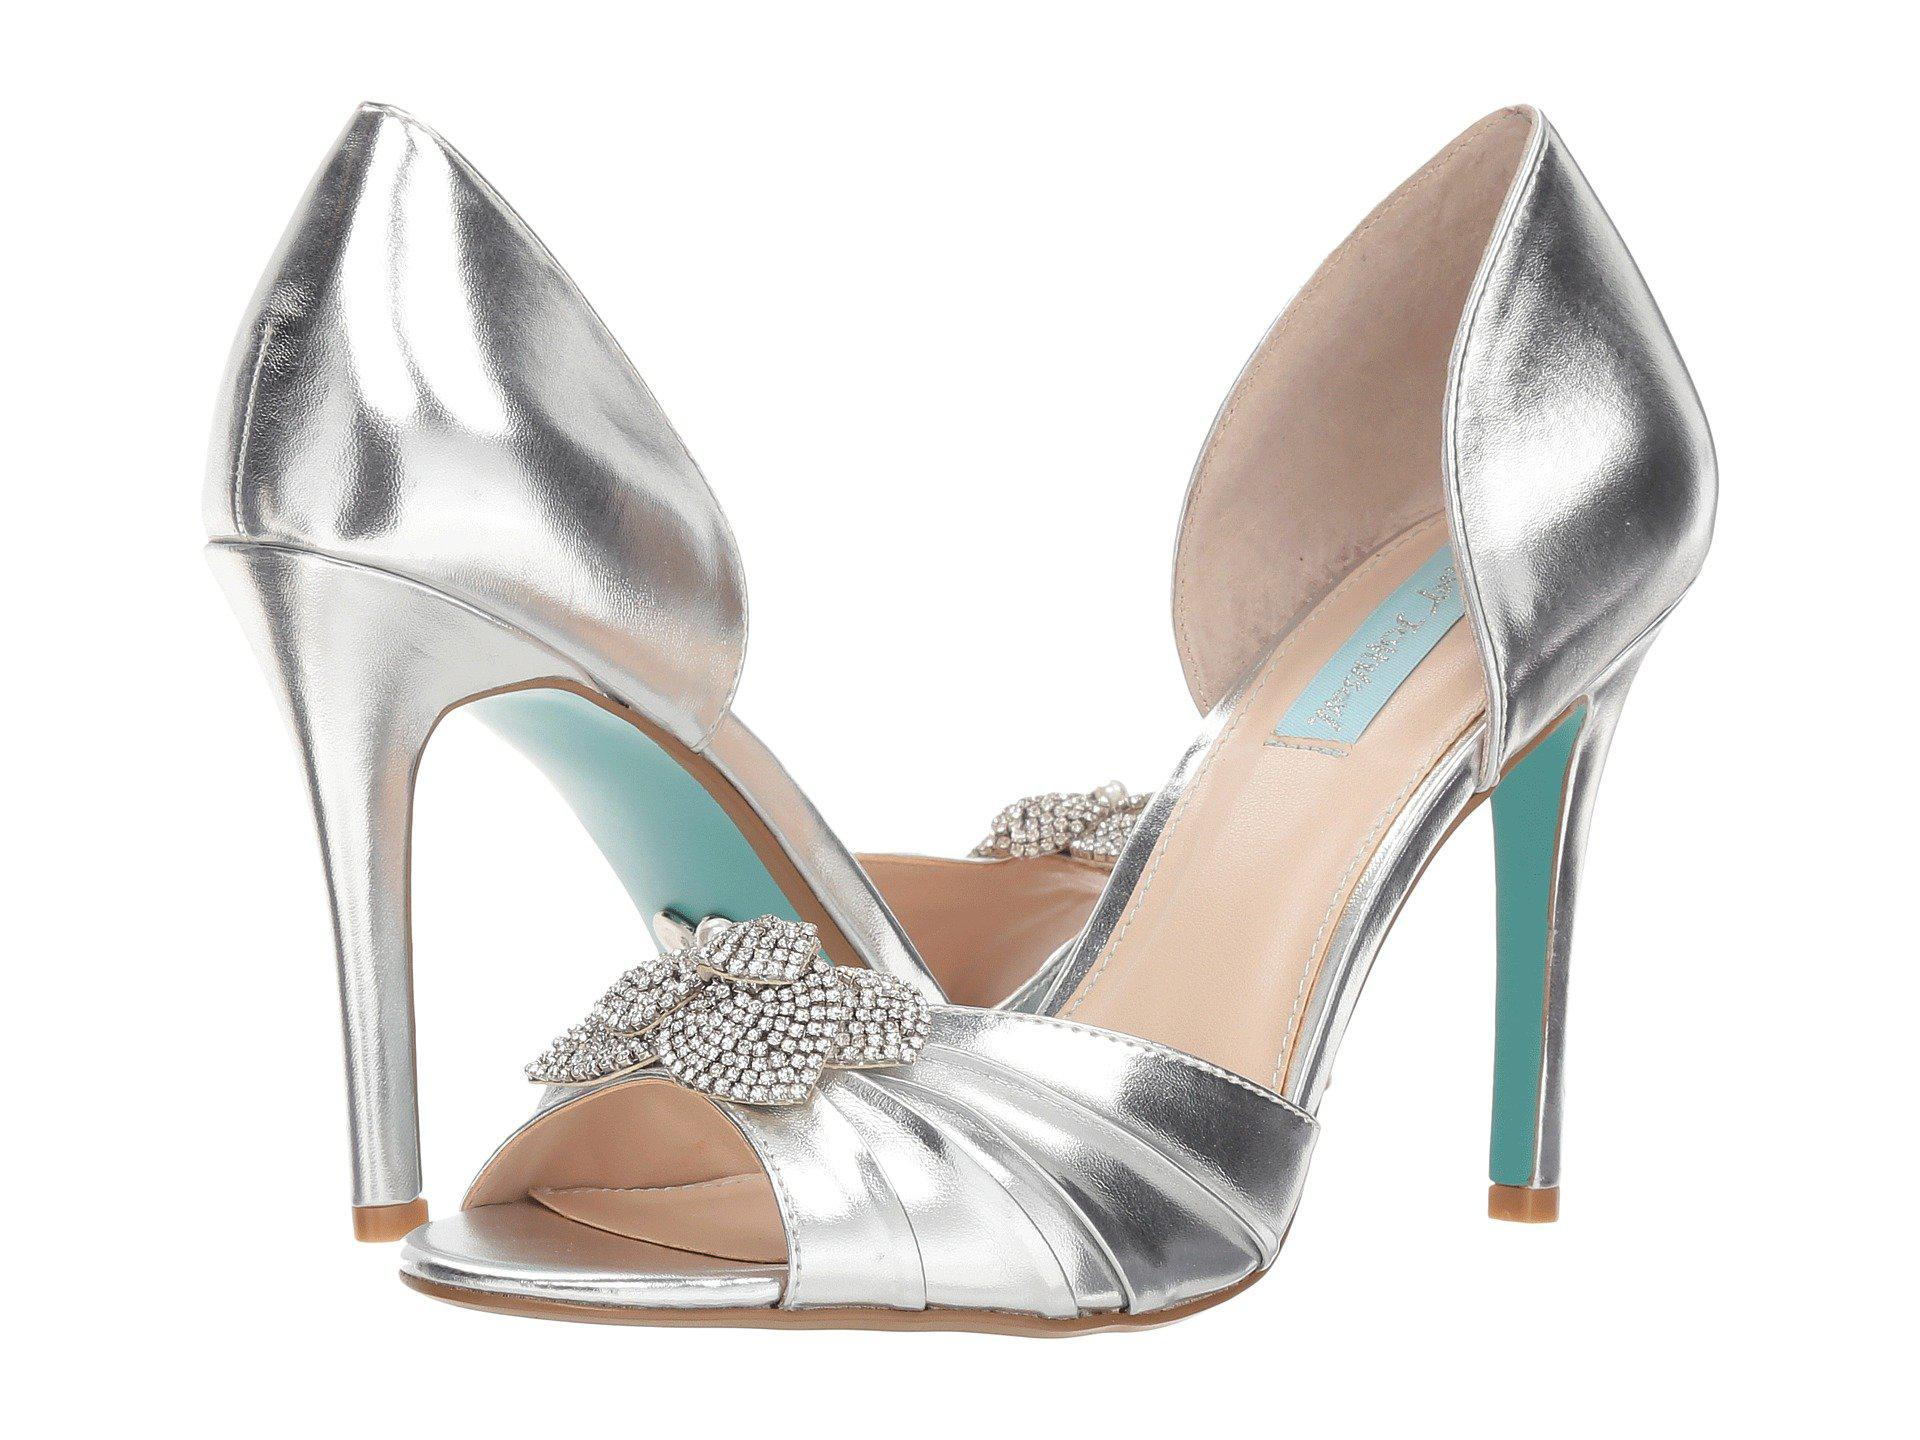 74cbe53eb41 Lyst - Betsey Johnson Briar (ivory Satin) High Heels in Metallic